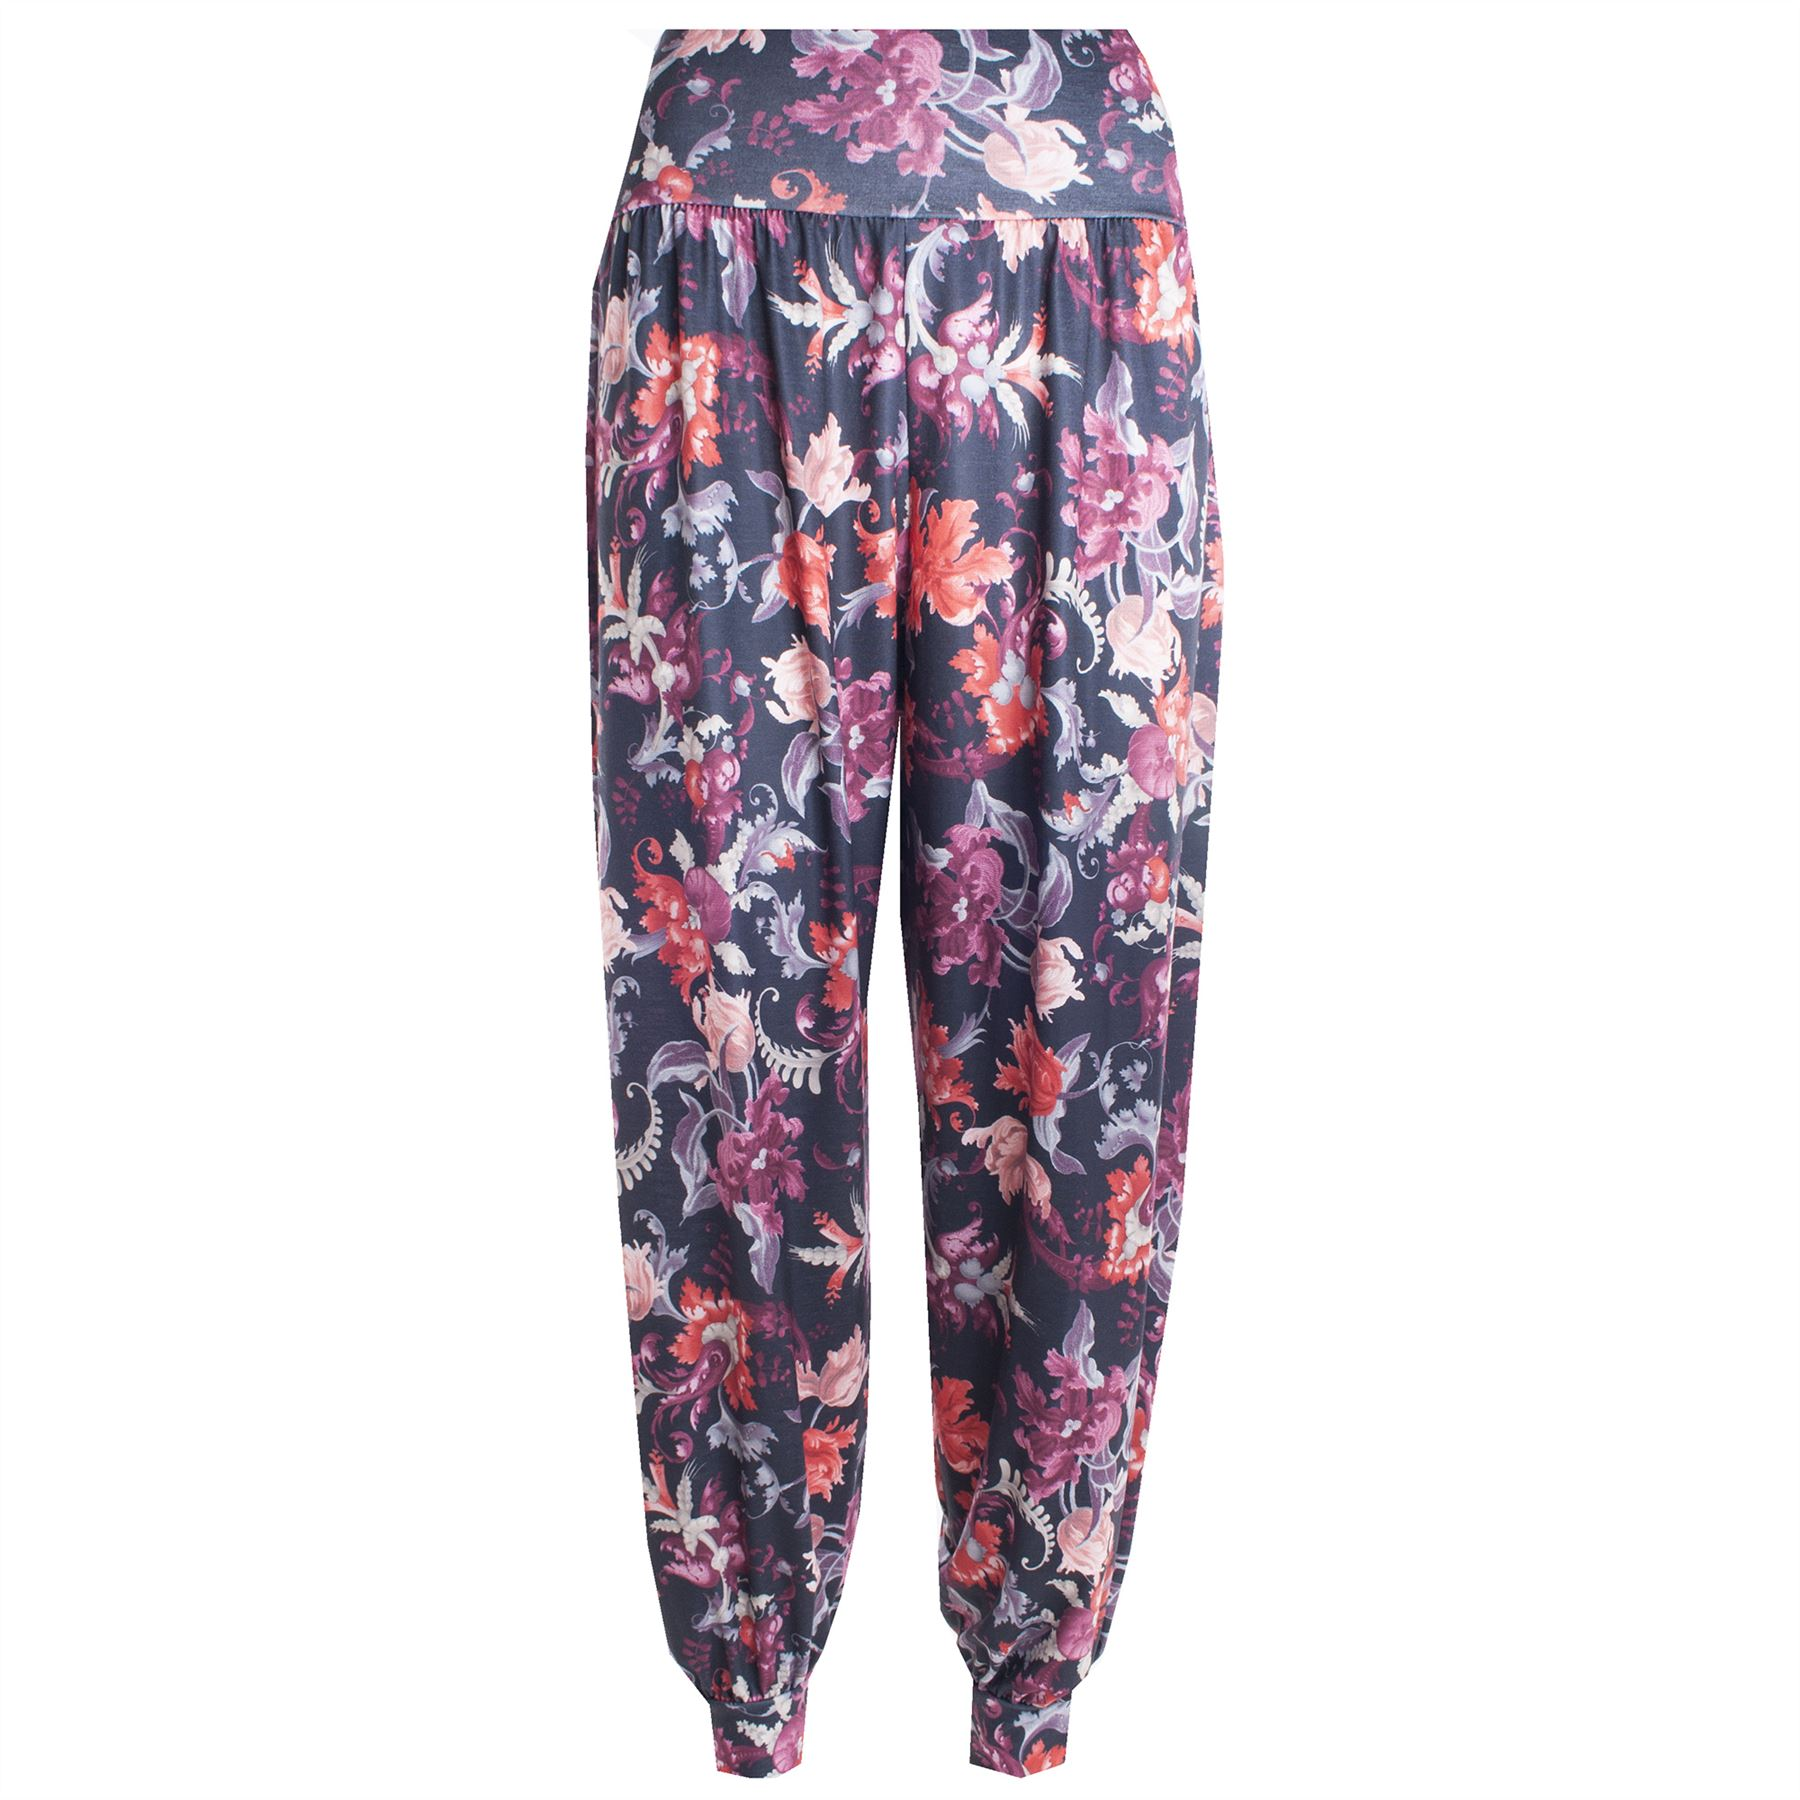 Popular Womens Ladies Tropical Printed Ali Baba Bottoms Harem Pants Trousers Leggings